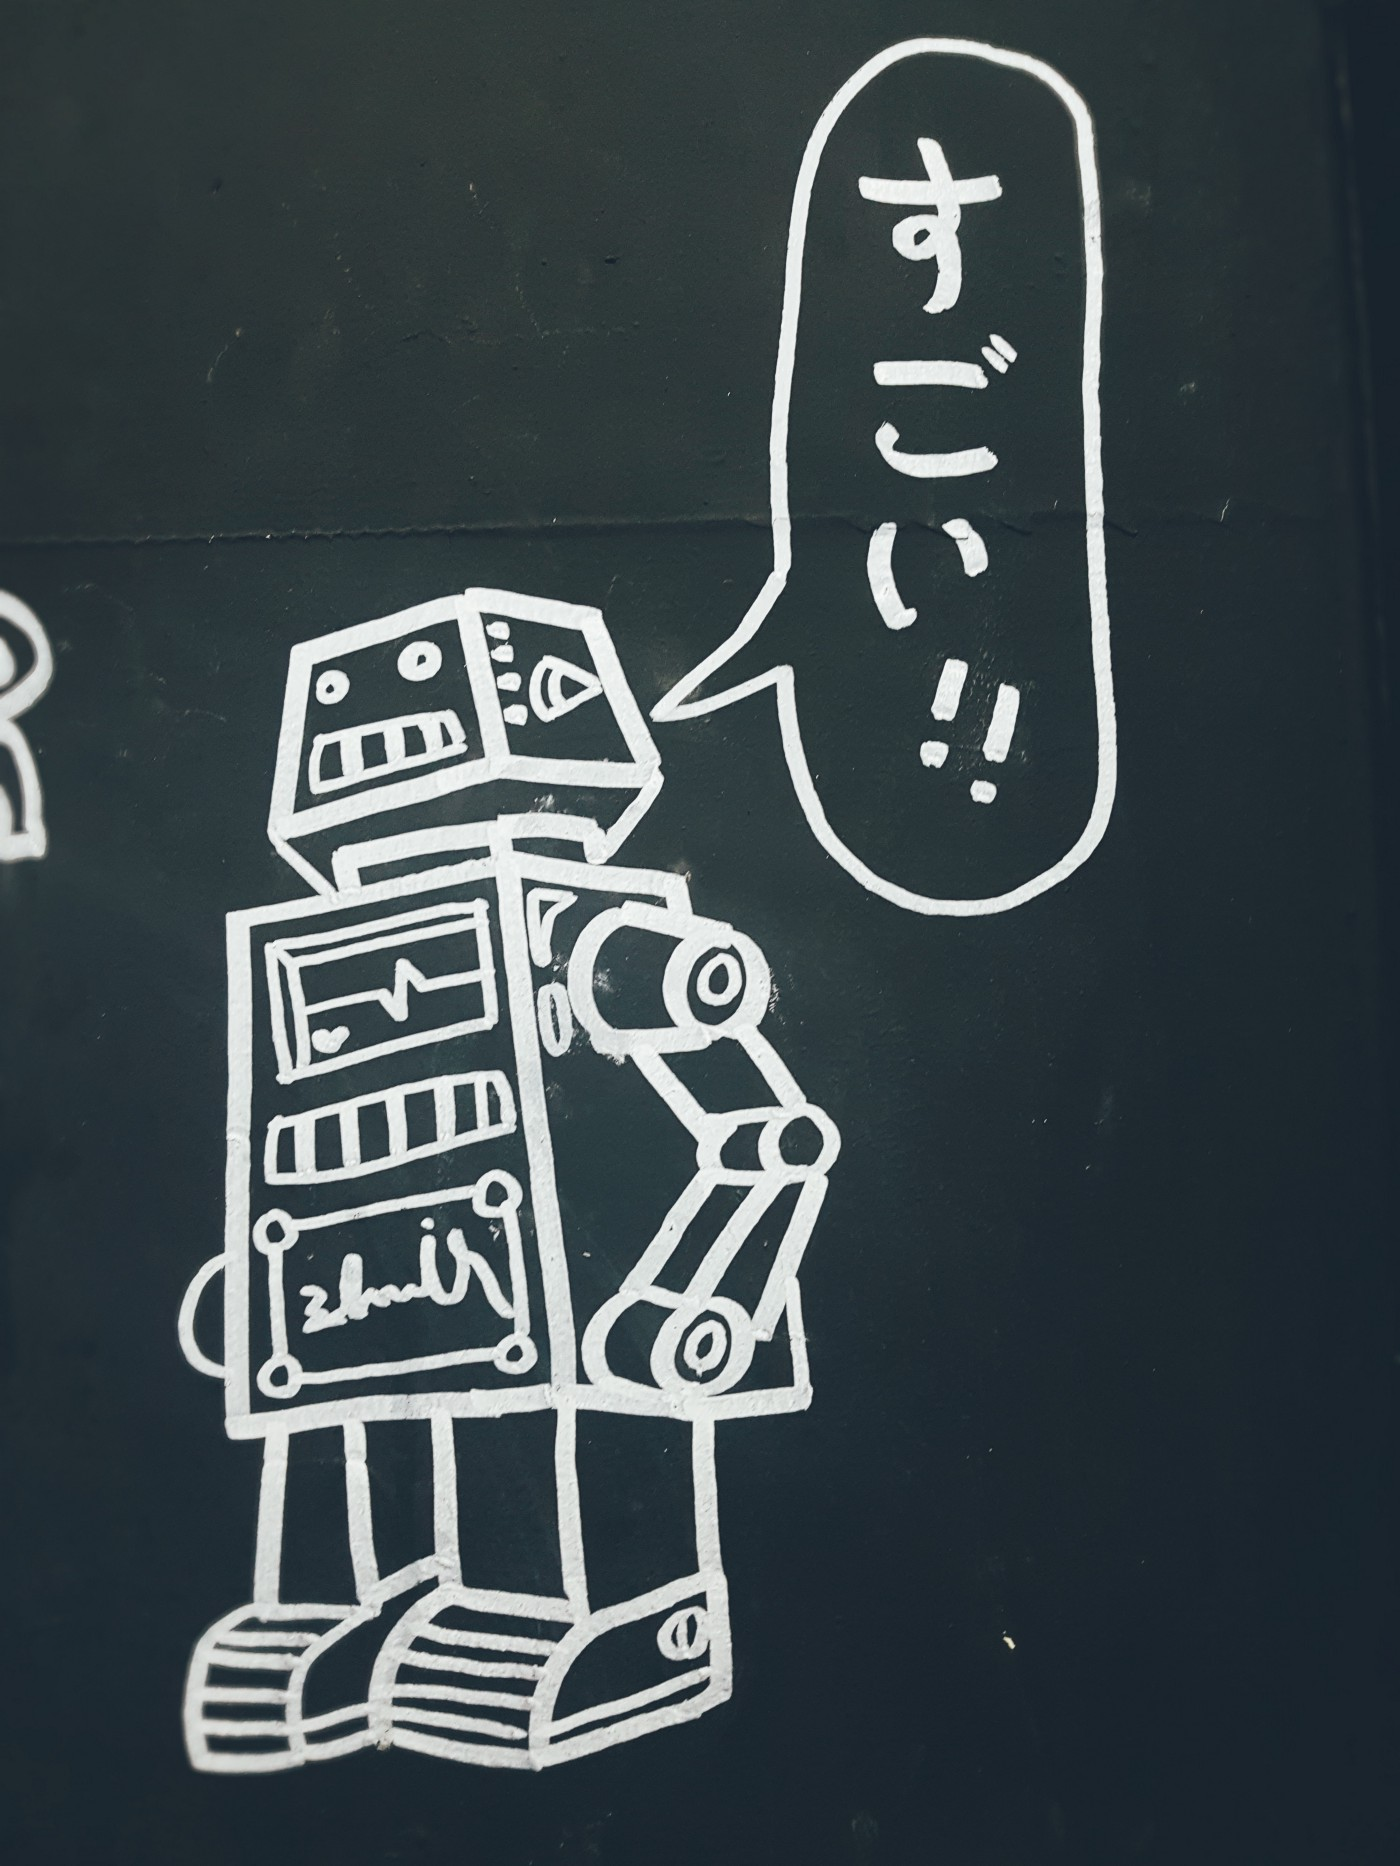 A robot with a speech bubble showing conversational skills.